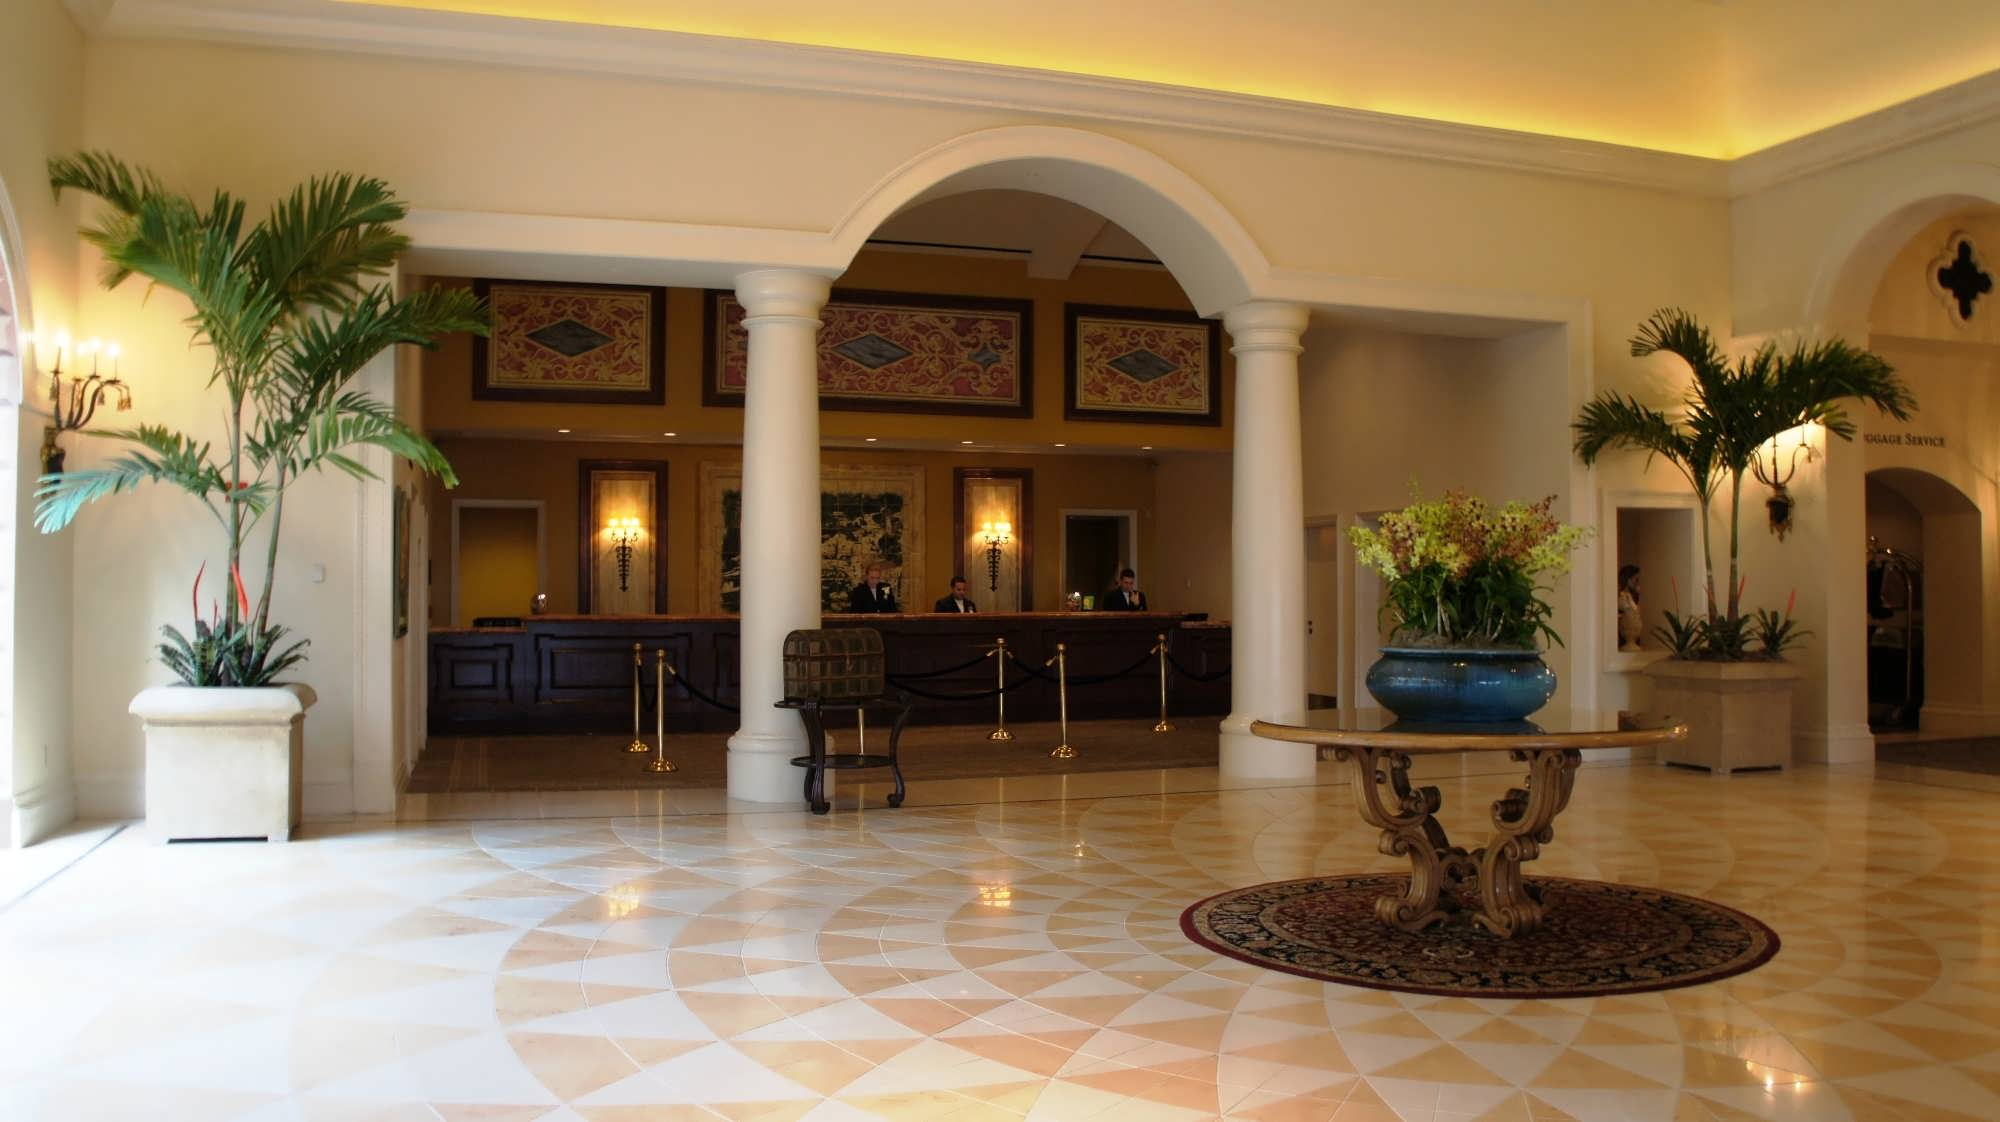 Portofino Bay Hotel Front Desk and lobby area